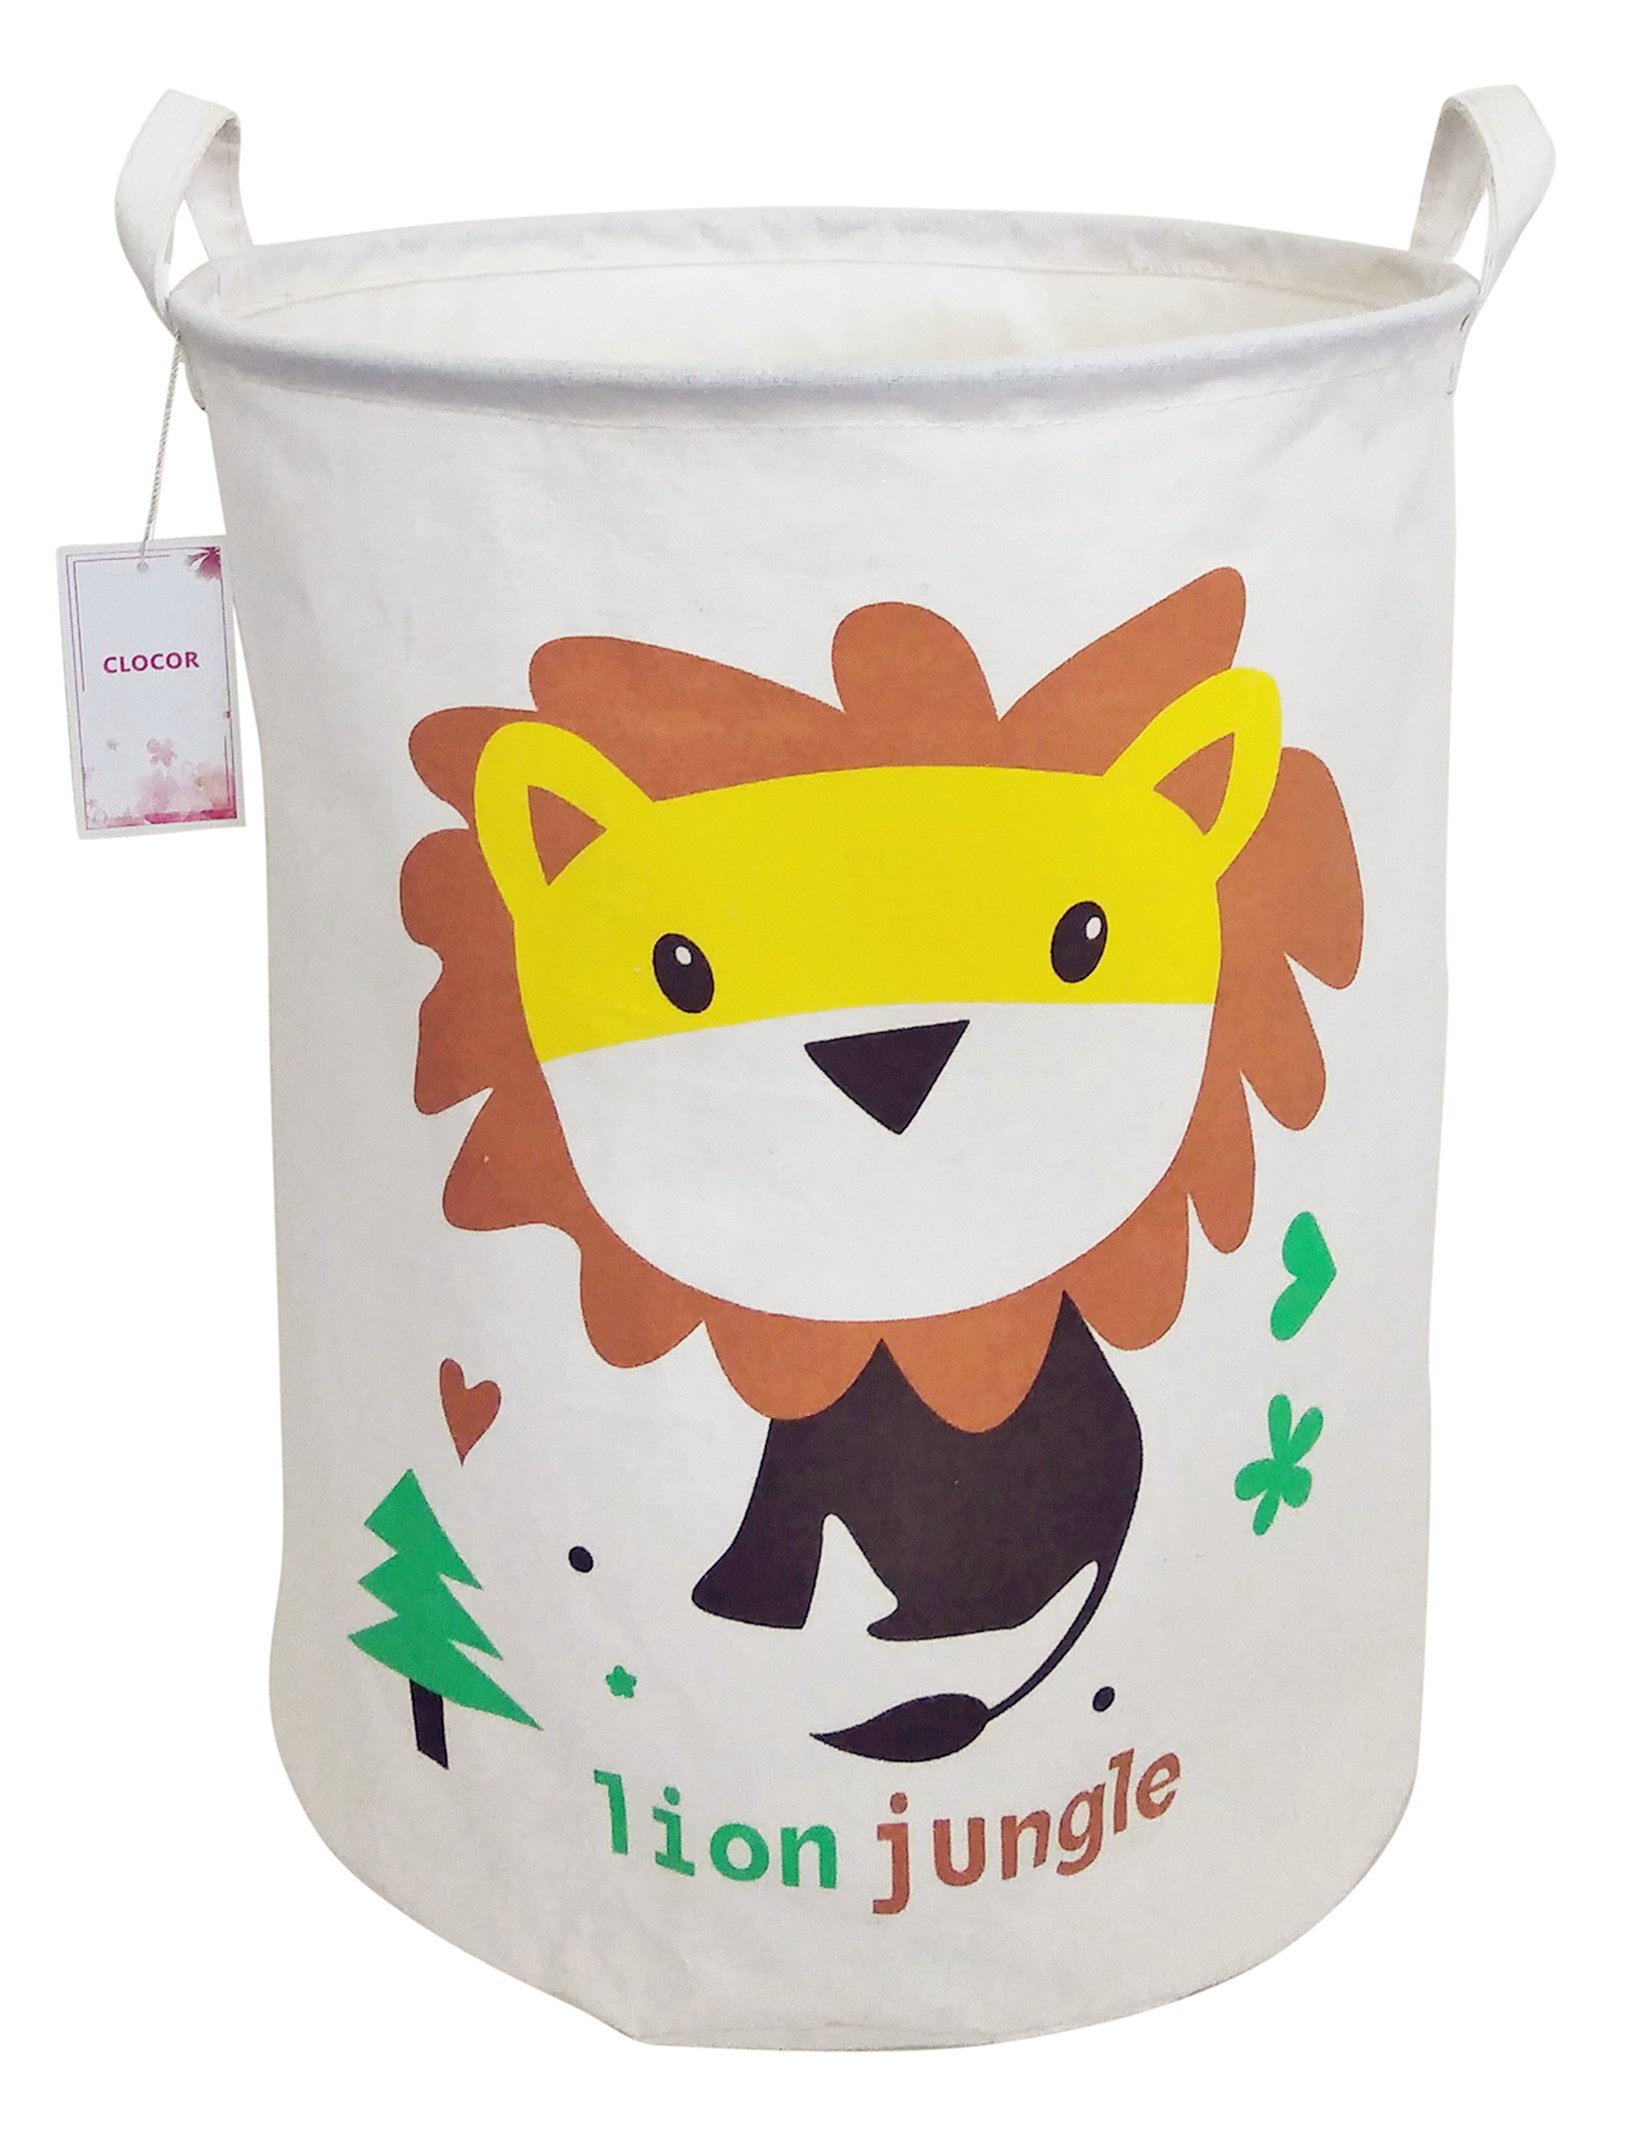 CLOCOR Large Storage Bin-Cotton storage Basket-Round Gift Basket with Handles for Toys,Laundry,Baby Nursery (Lion)